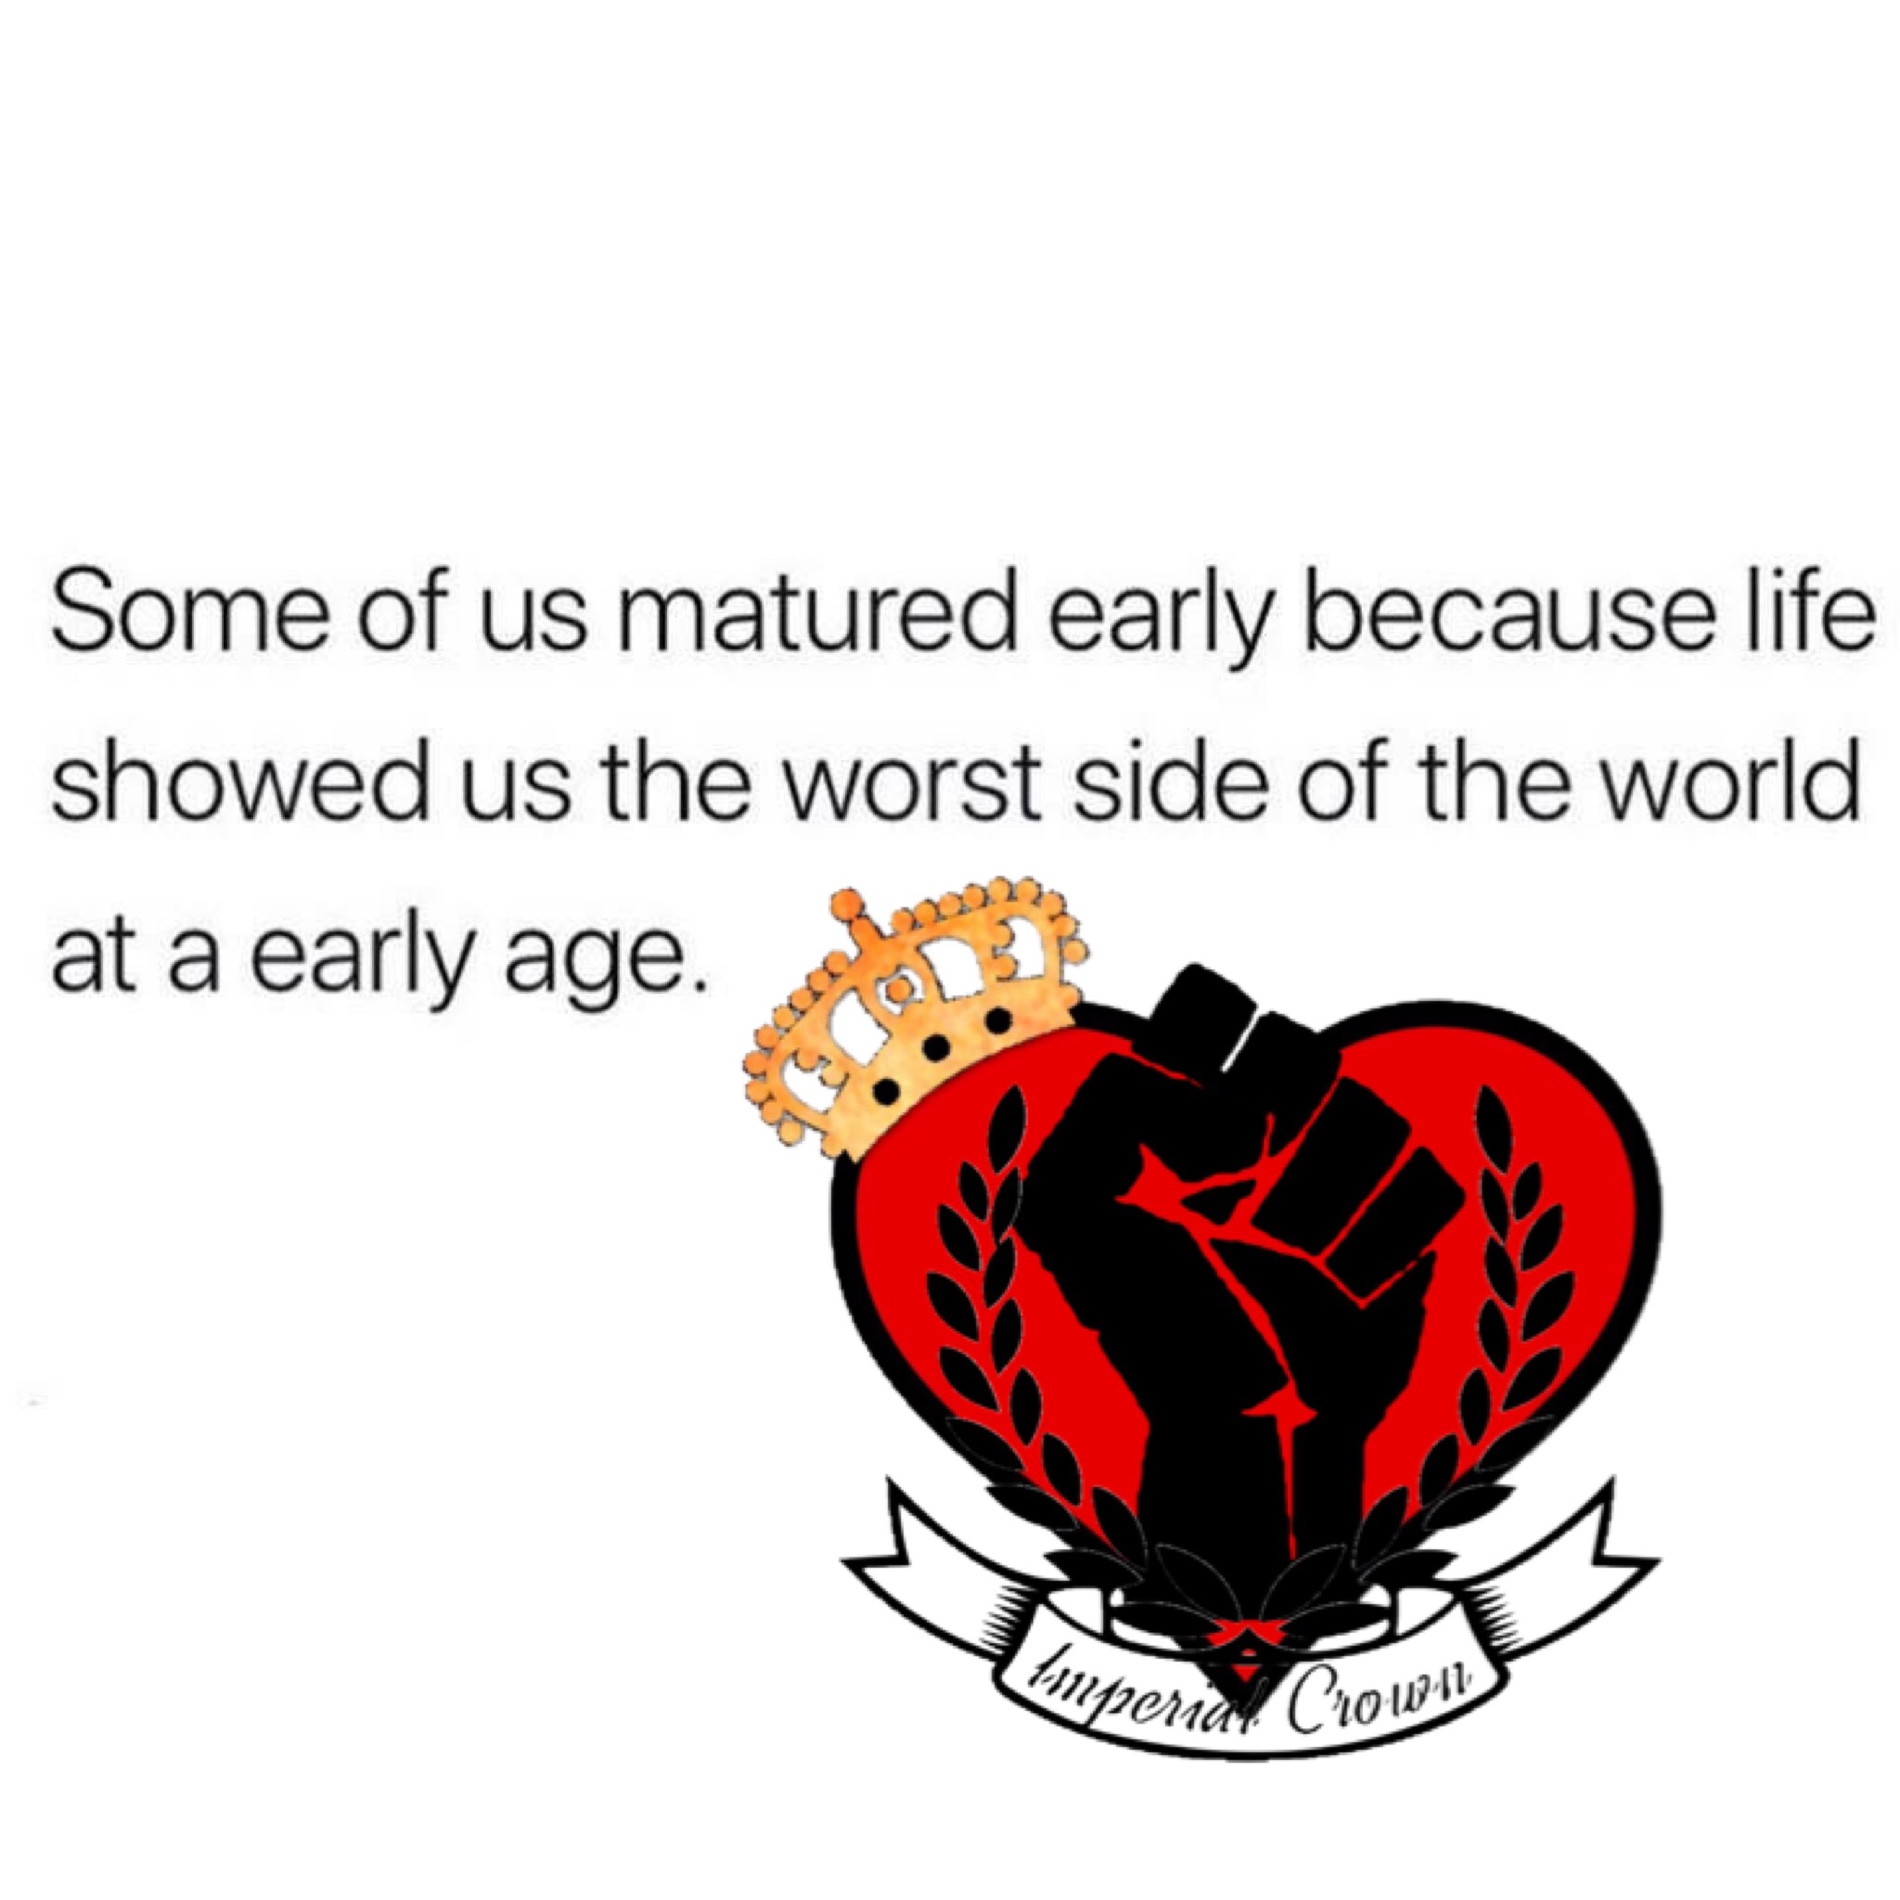 Some of us matured early because…